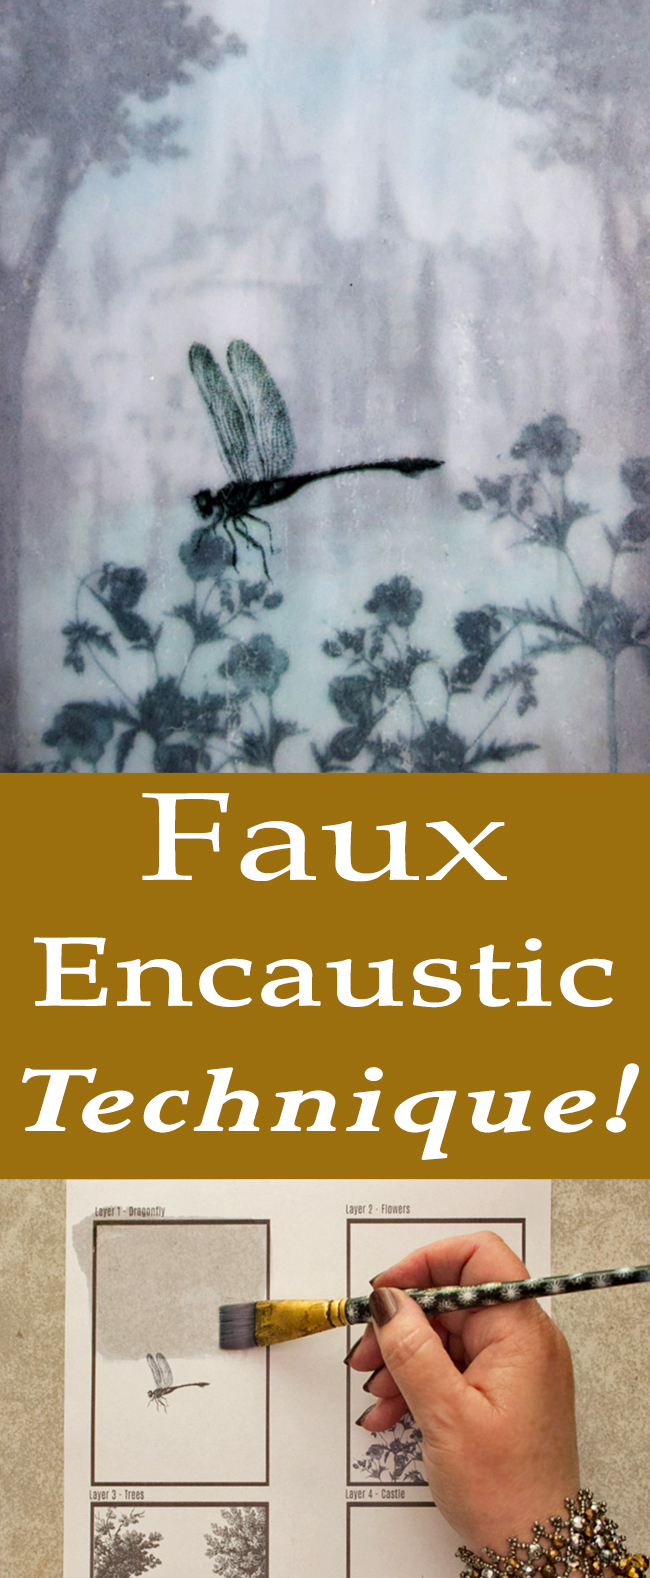 Faux Encaustic Technique